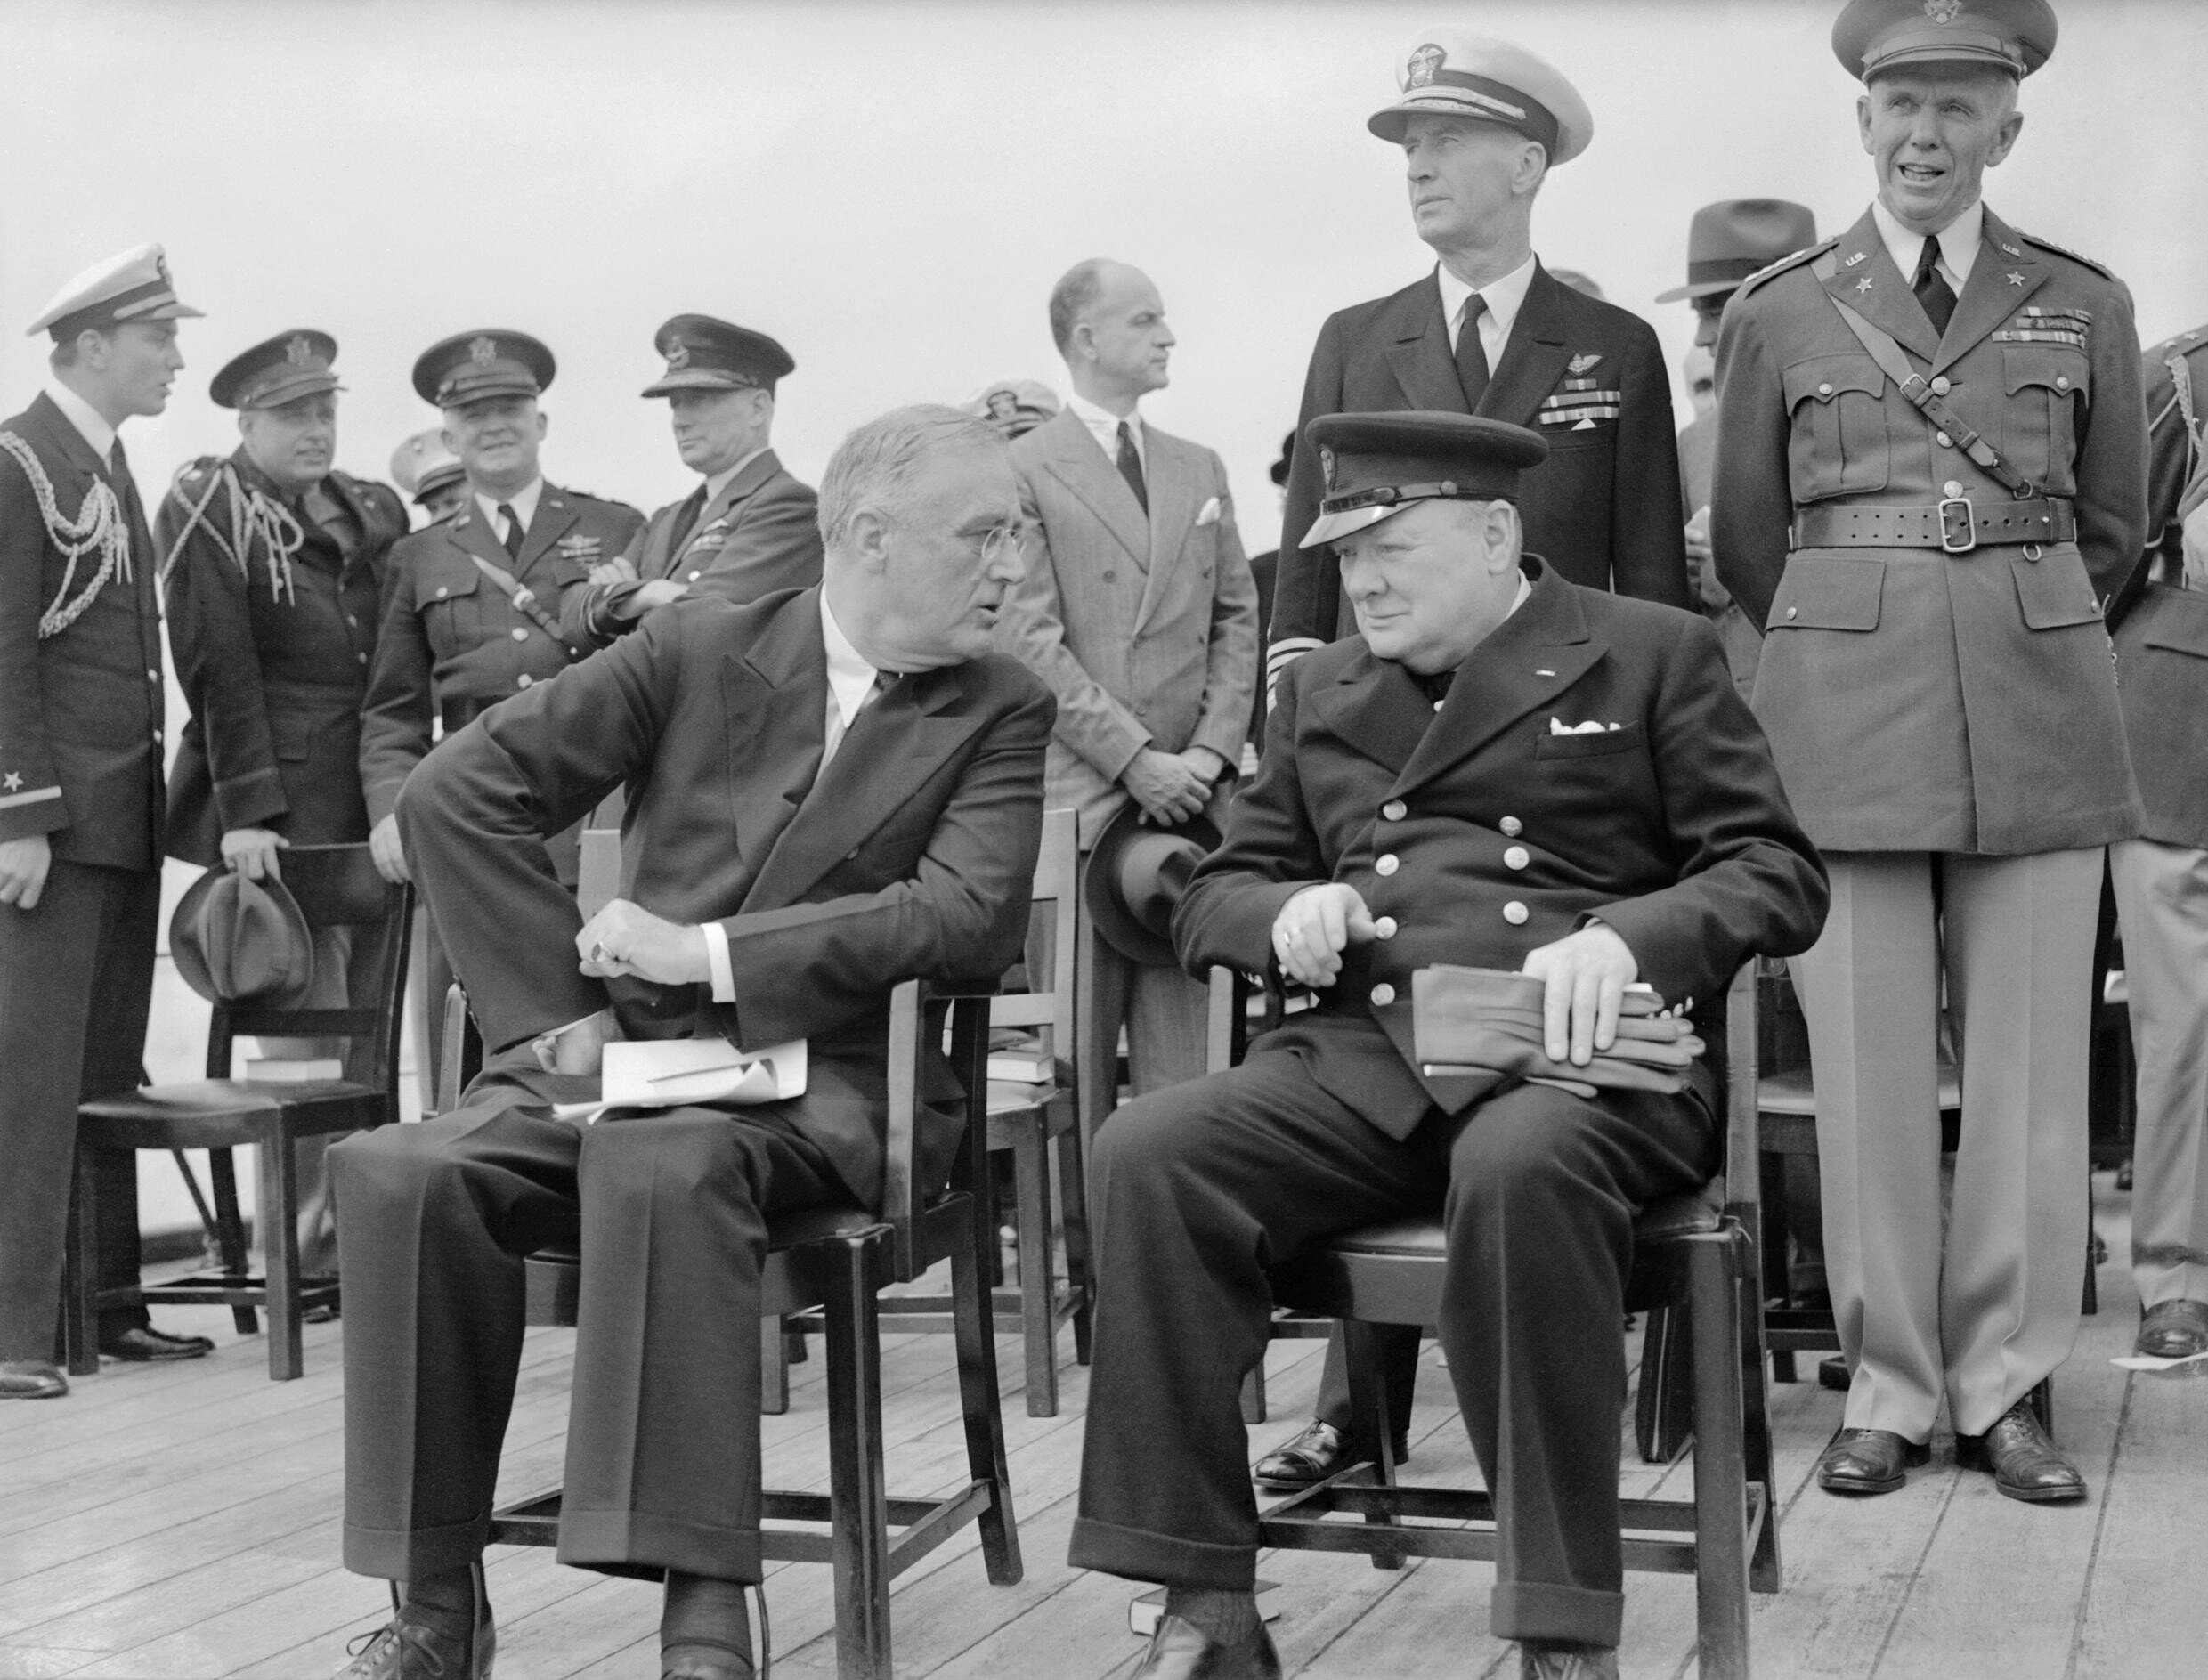 president roosevelt and winston churchill seated on the quarterdeck of hms princ